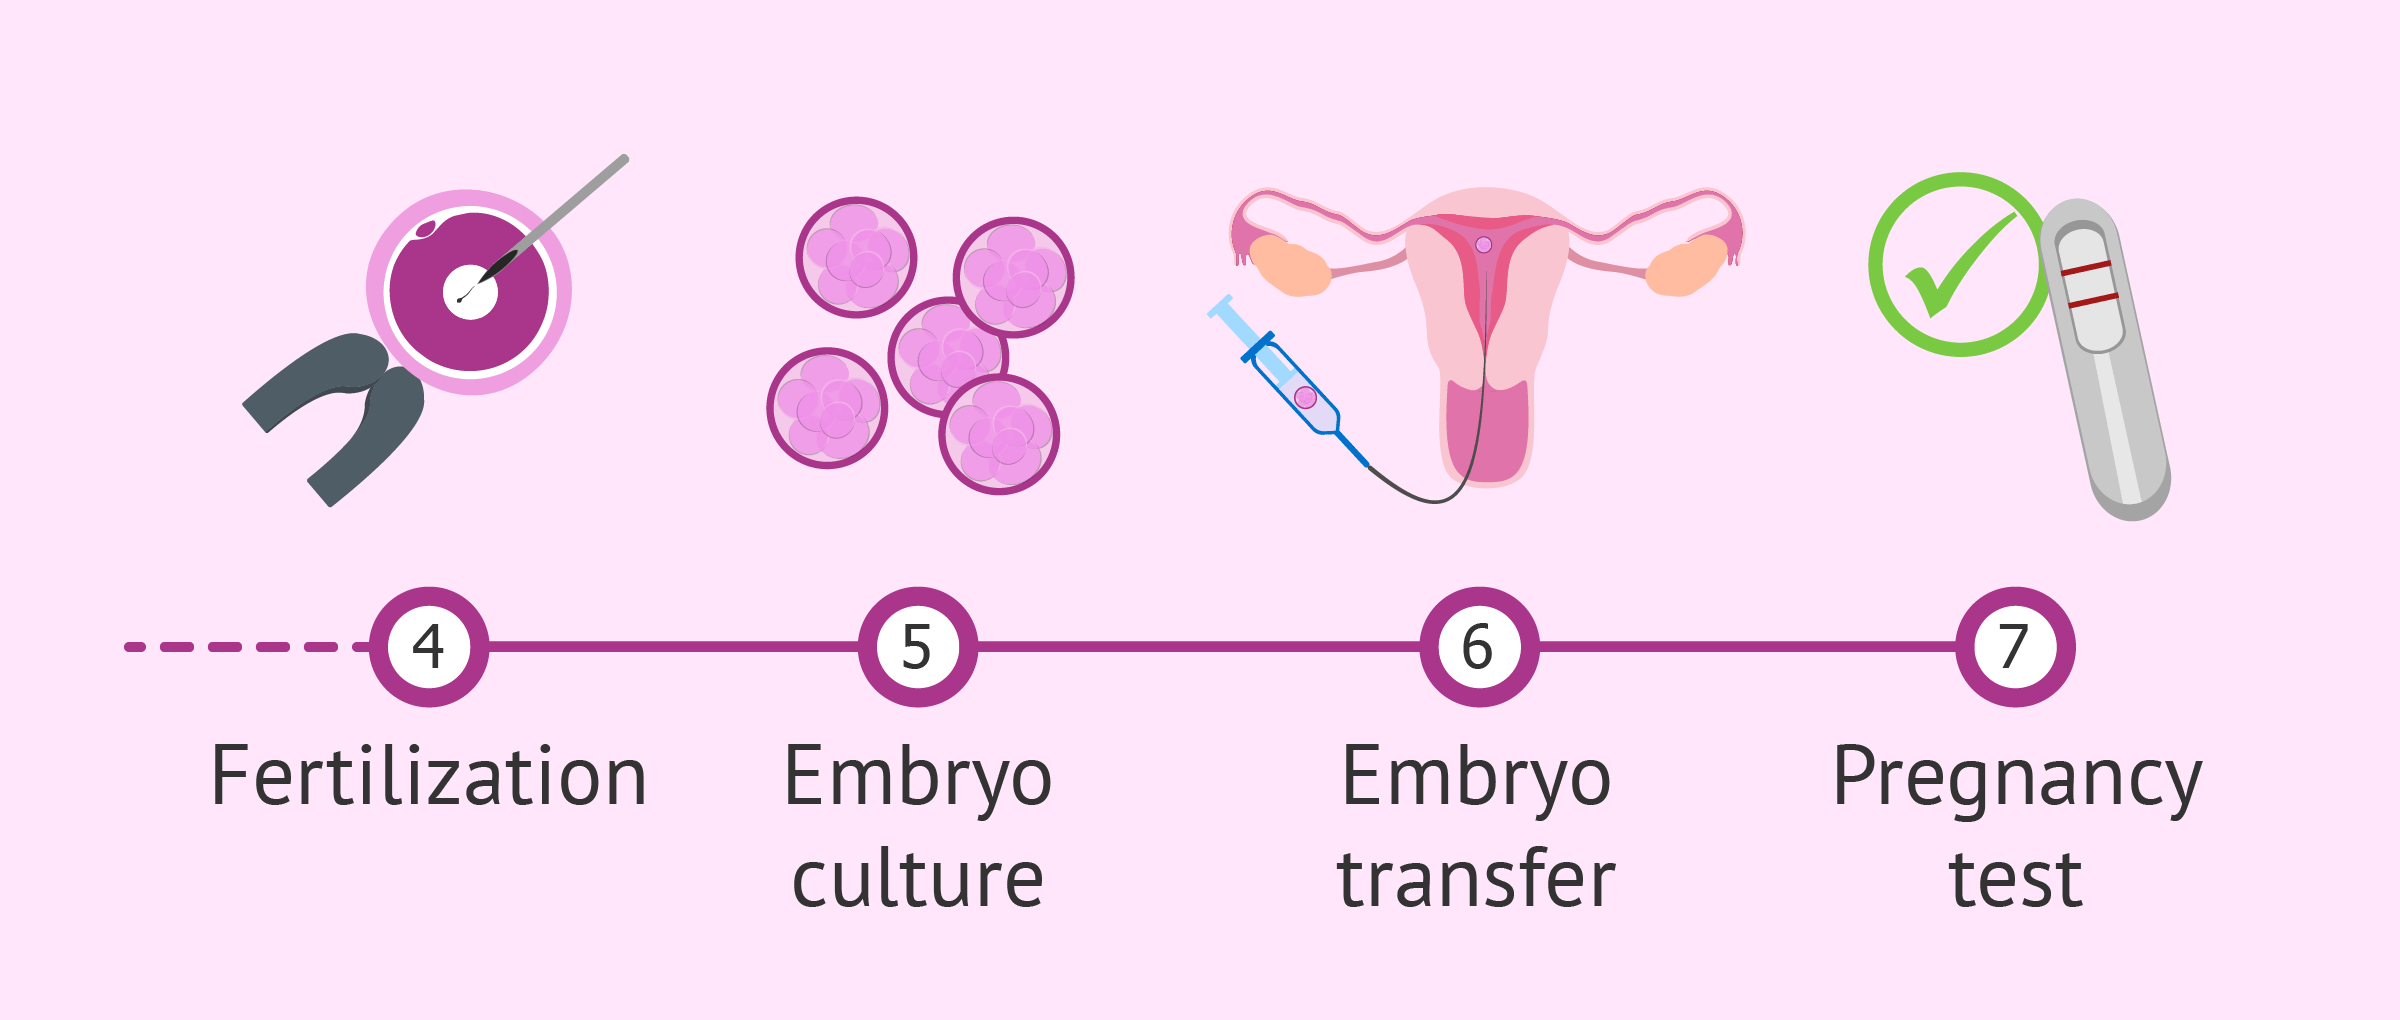 IVF process from fertilization to transfer